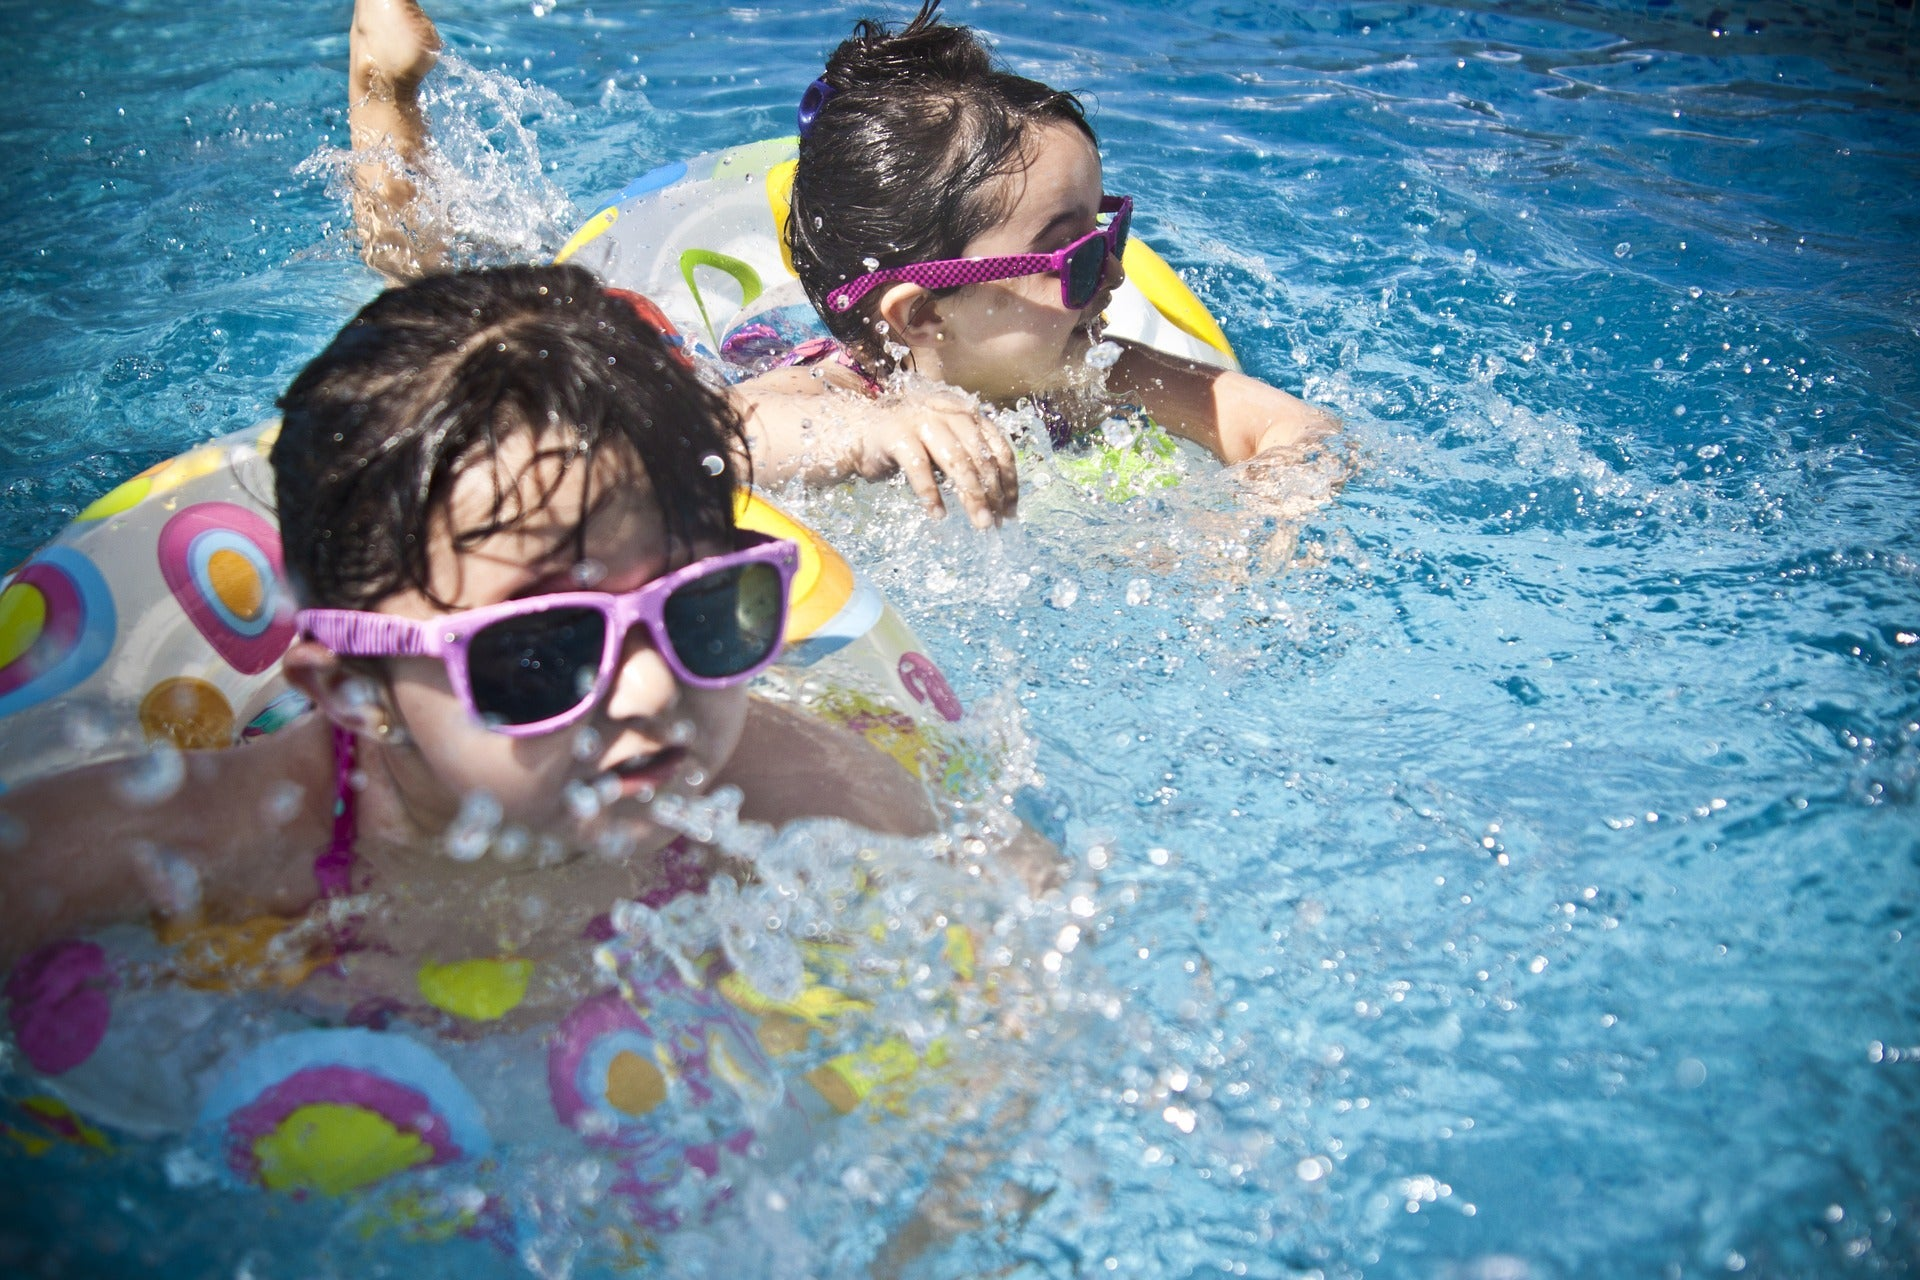 Why you should think twice before getting in a pool